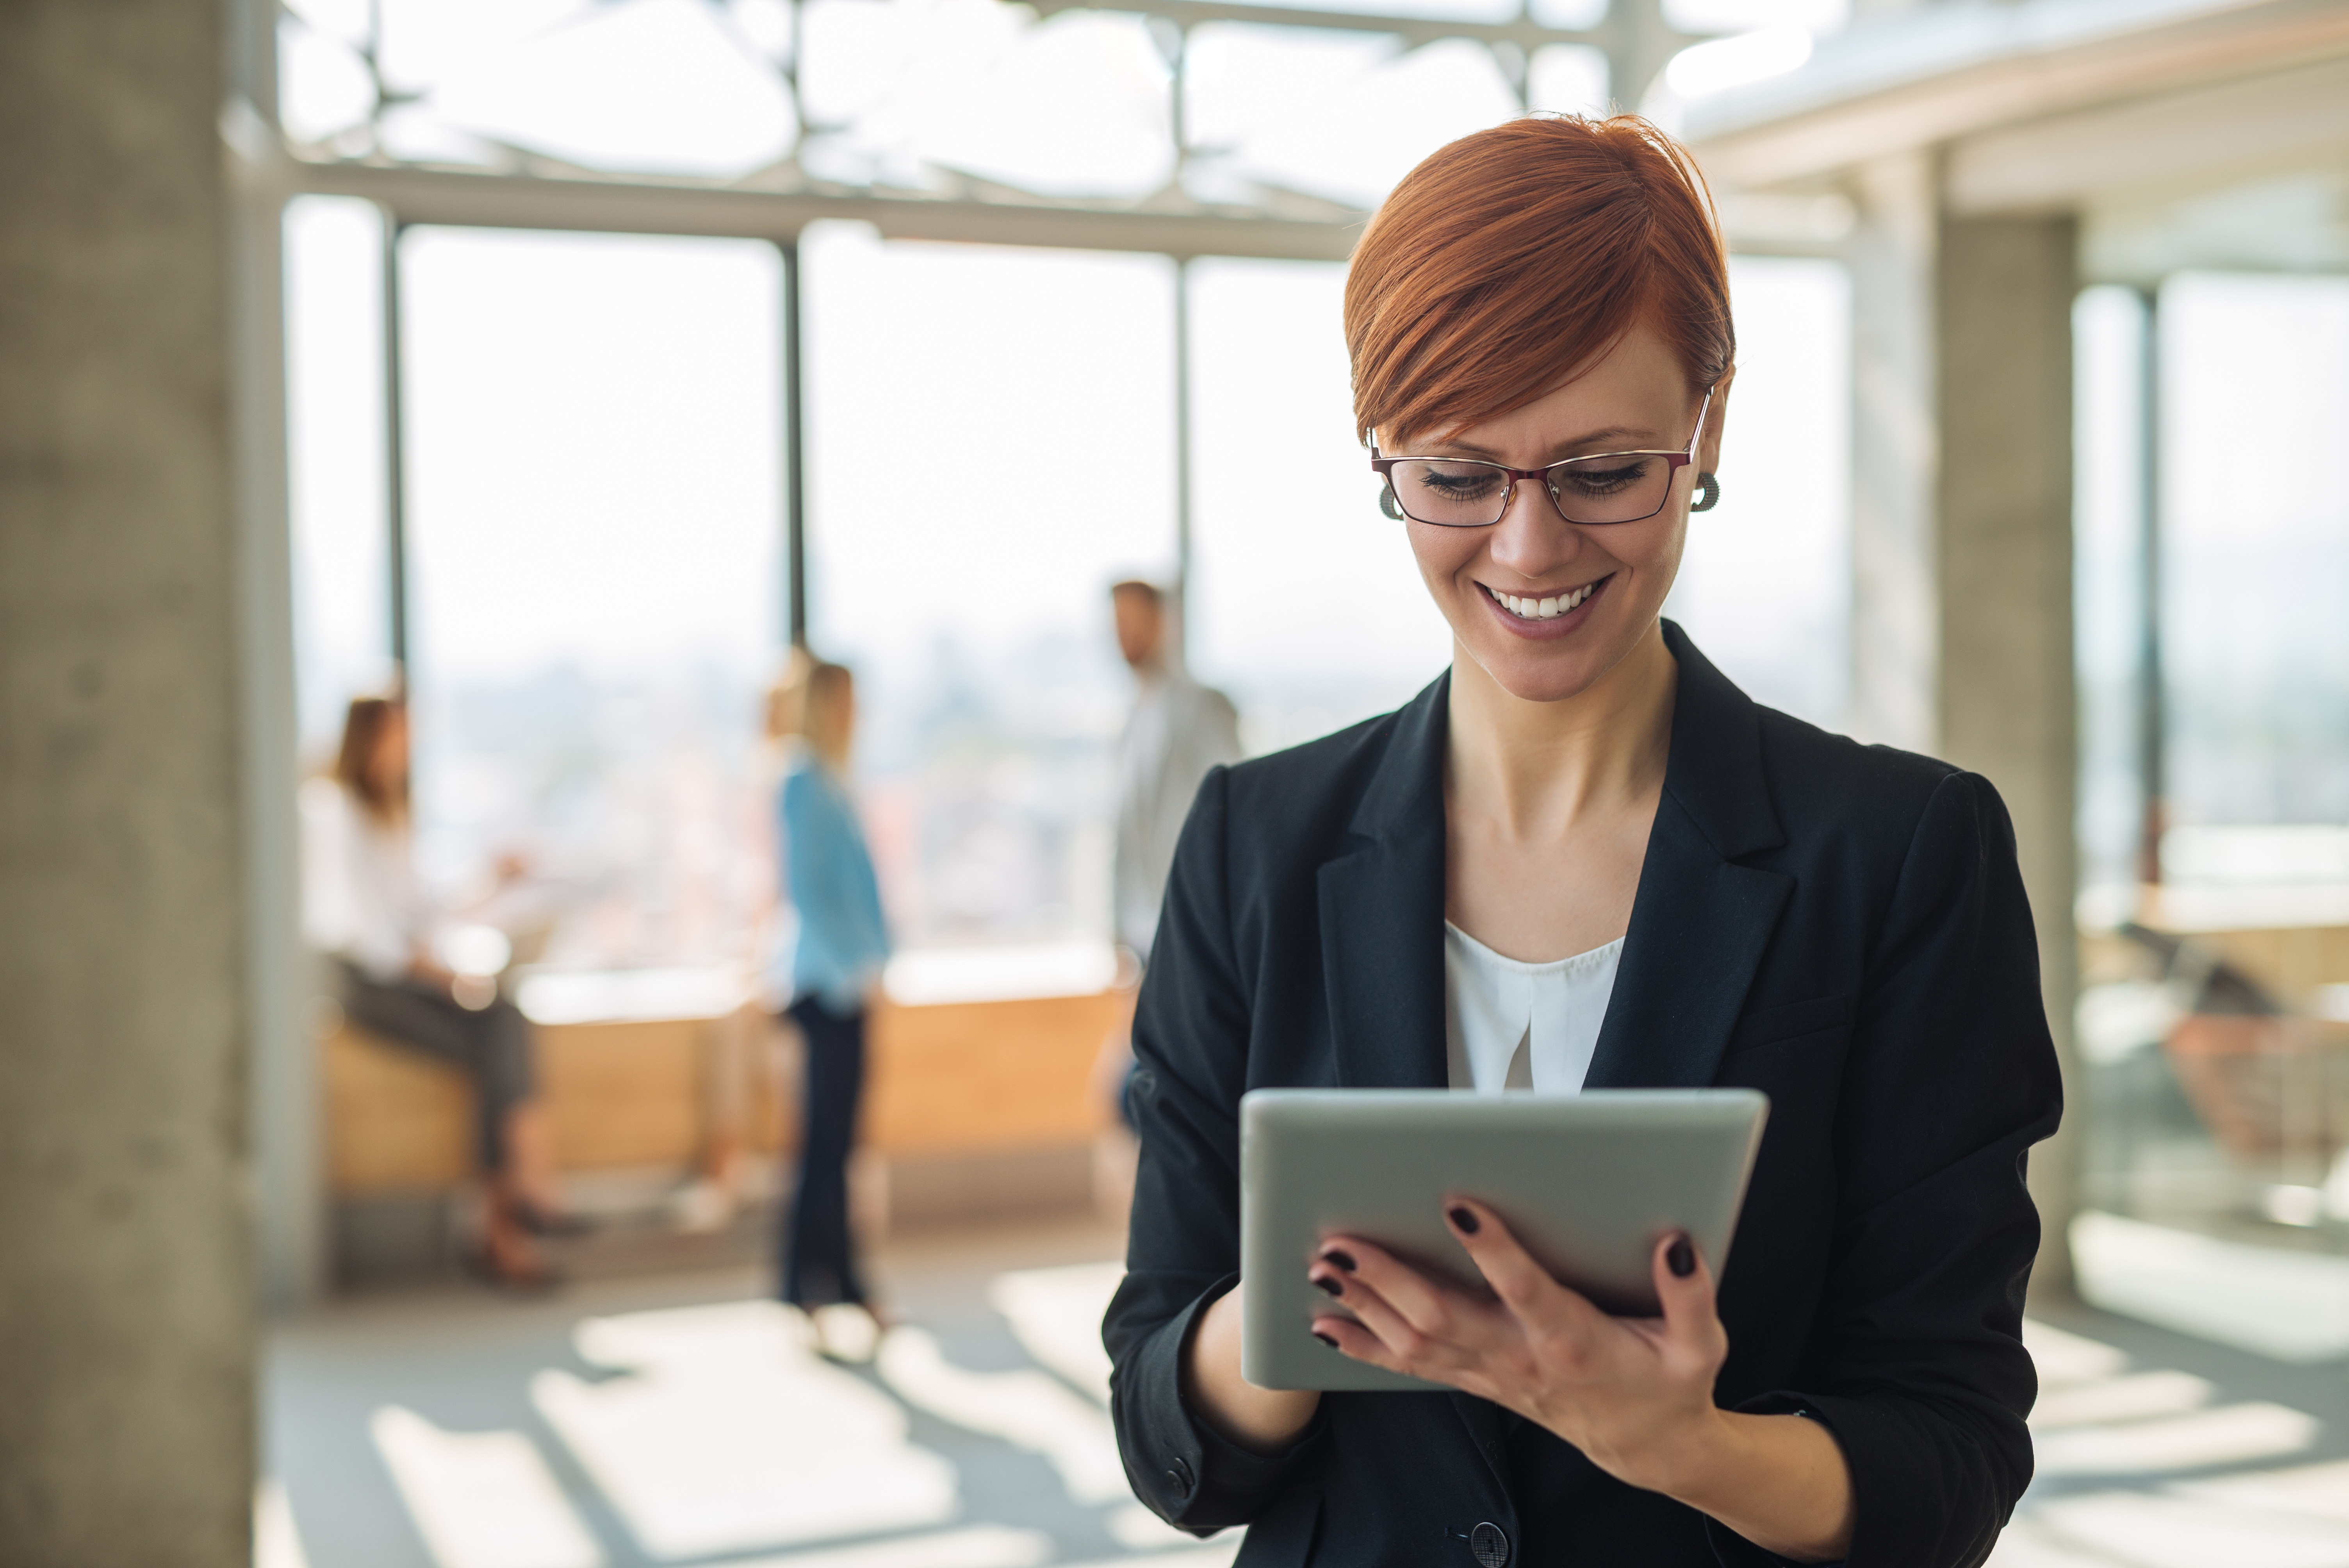 HR Manager holding a tablet.